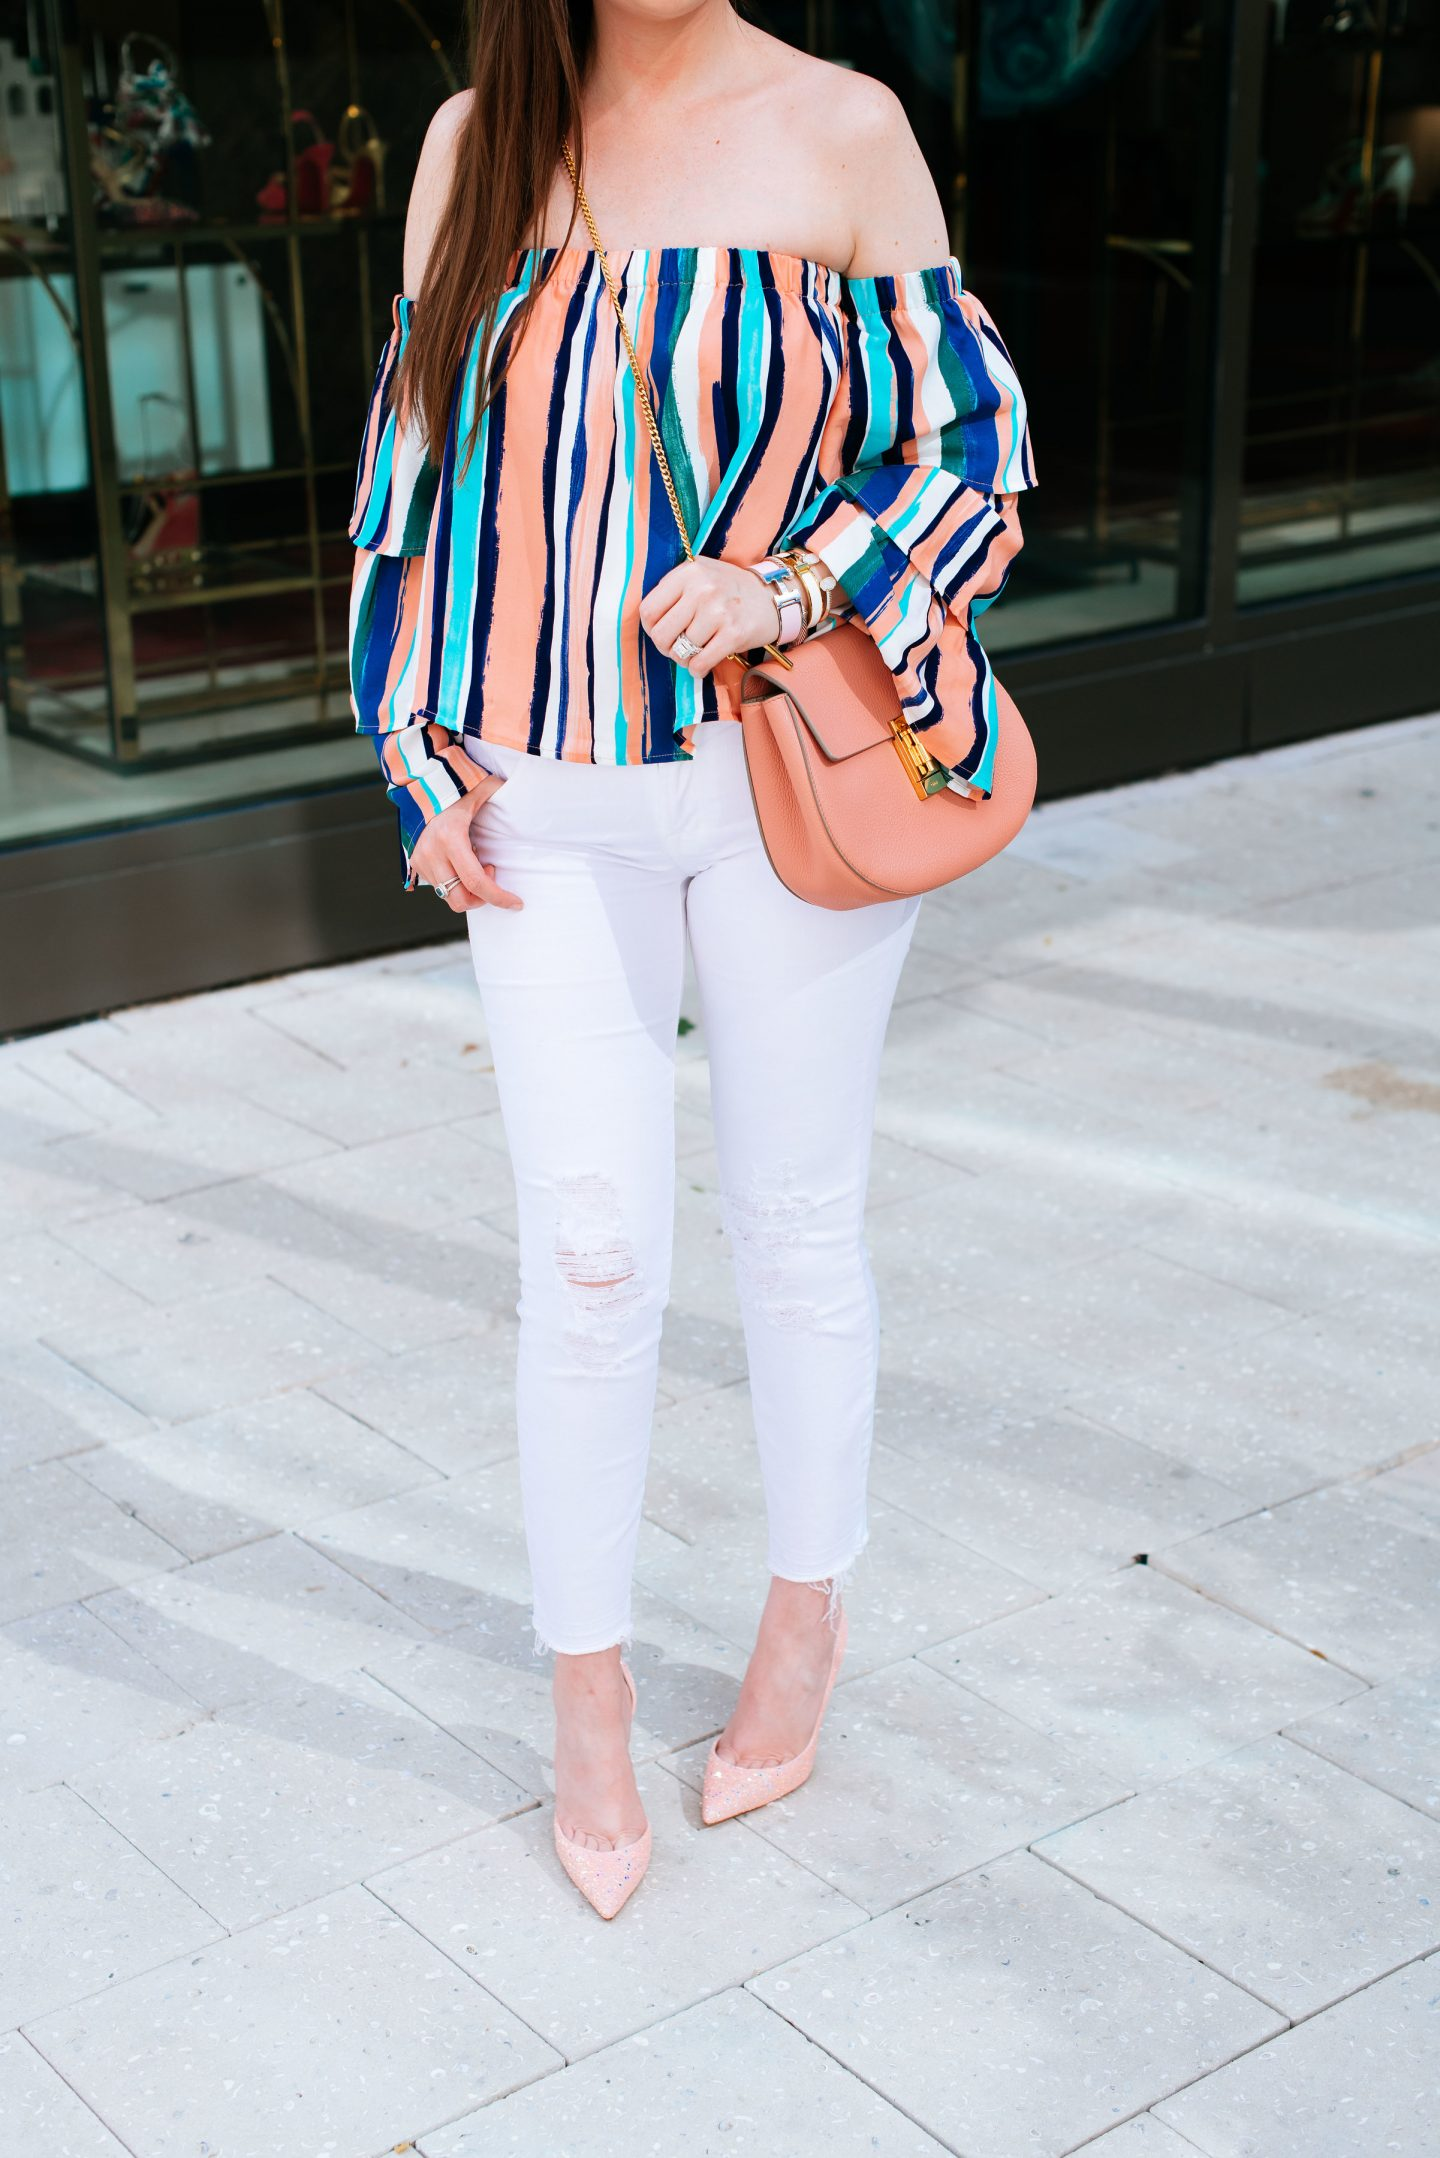 How To Style White Jeans With 5 Simple Outfits, striped top and white jeans